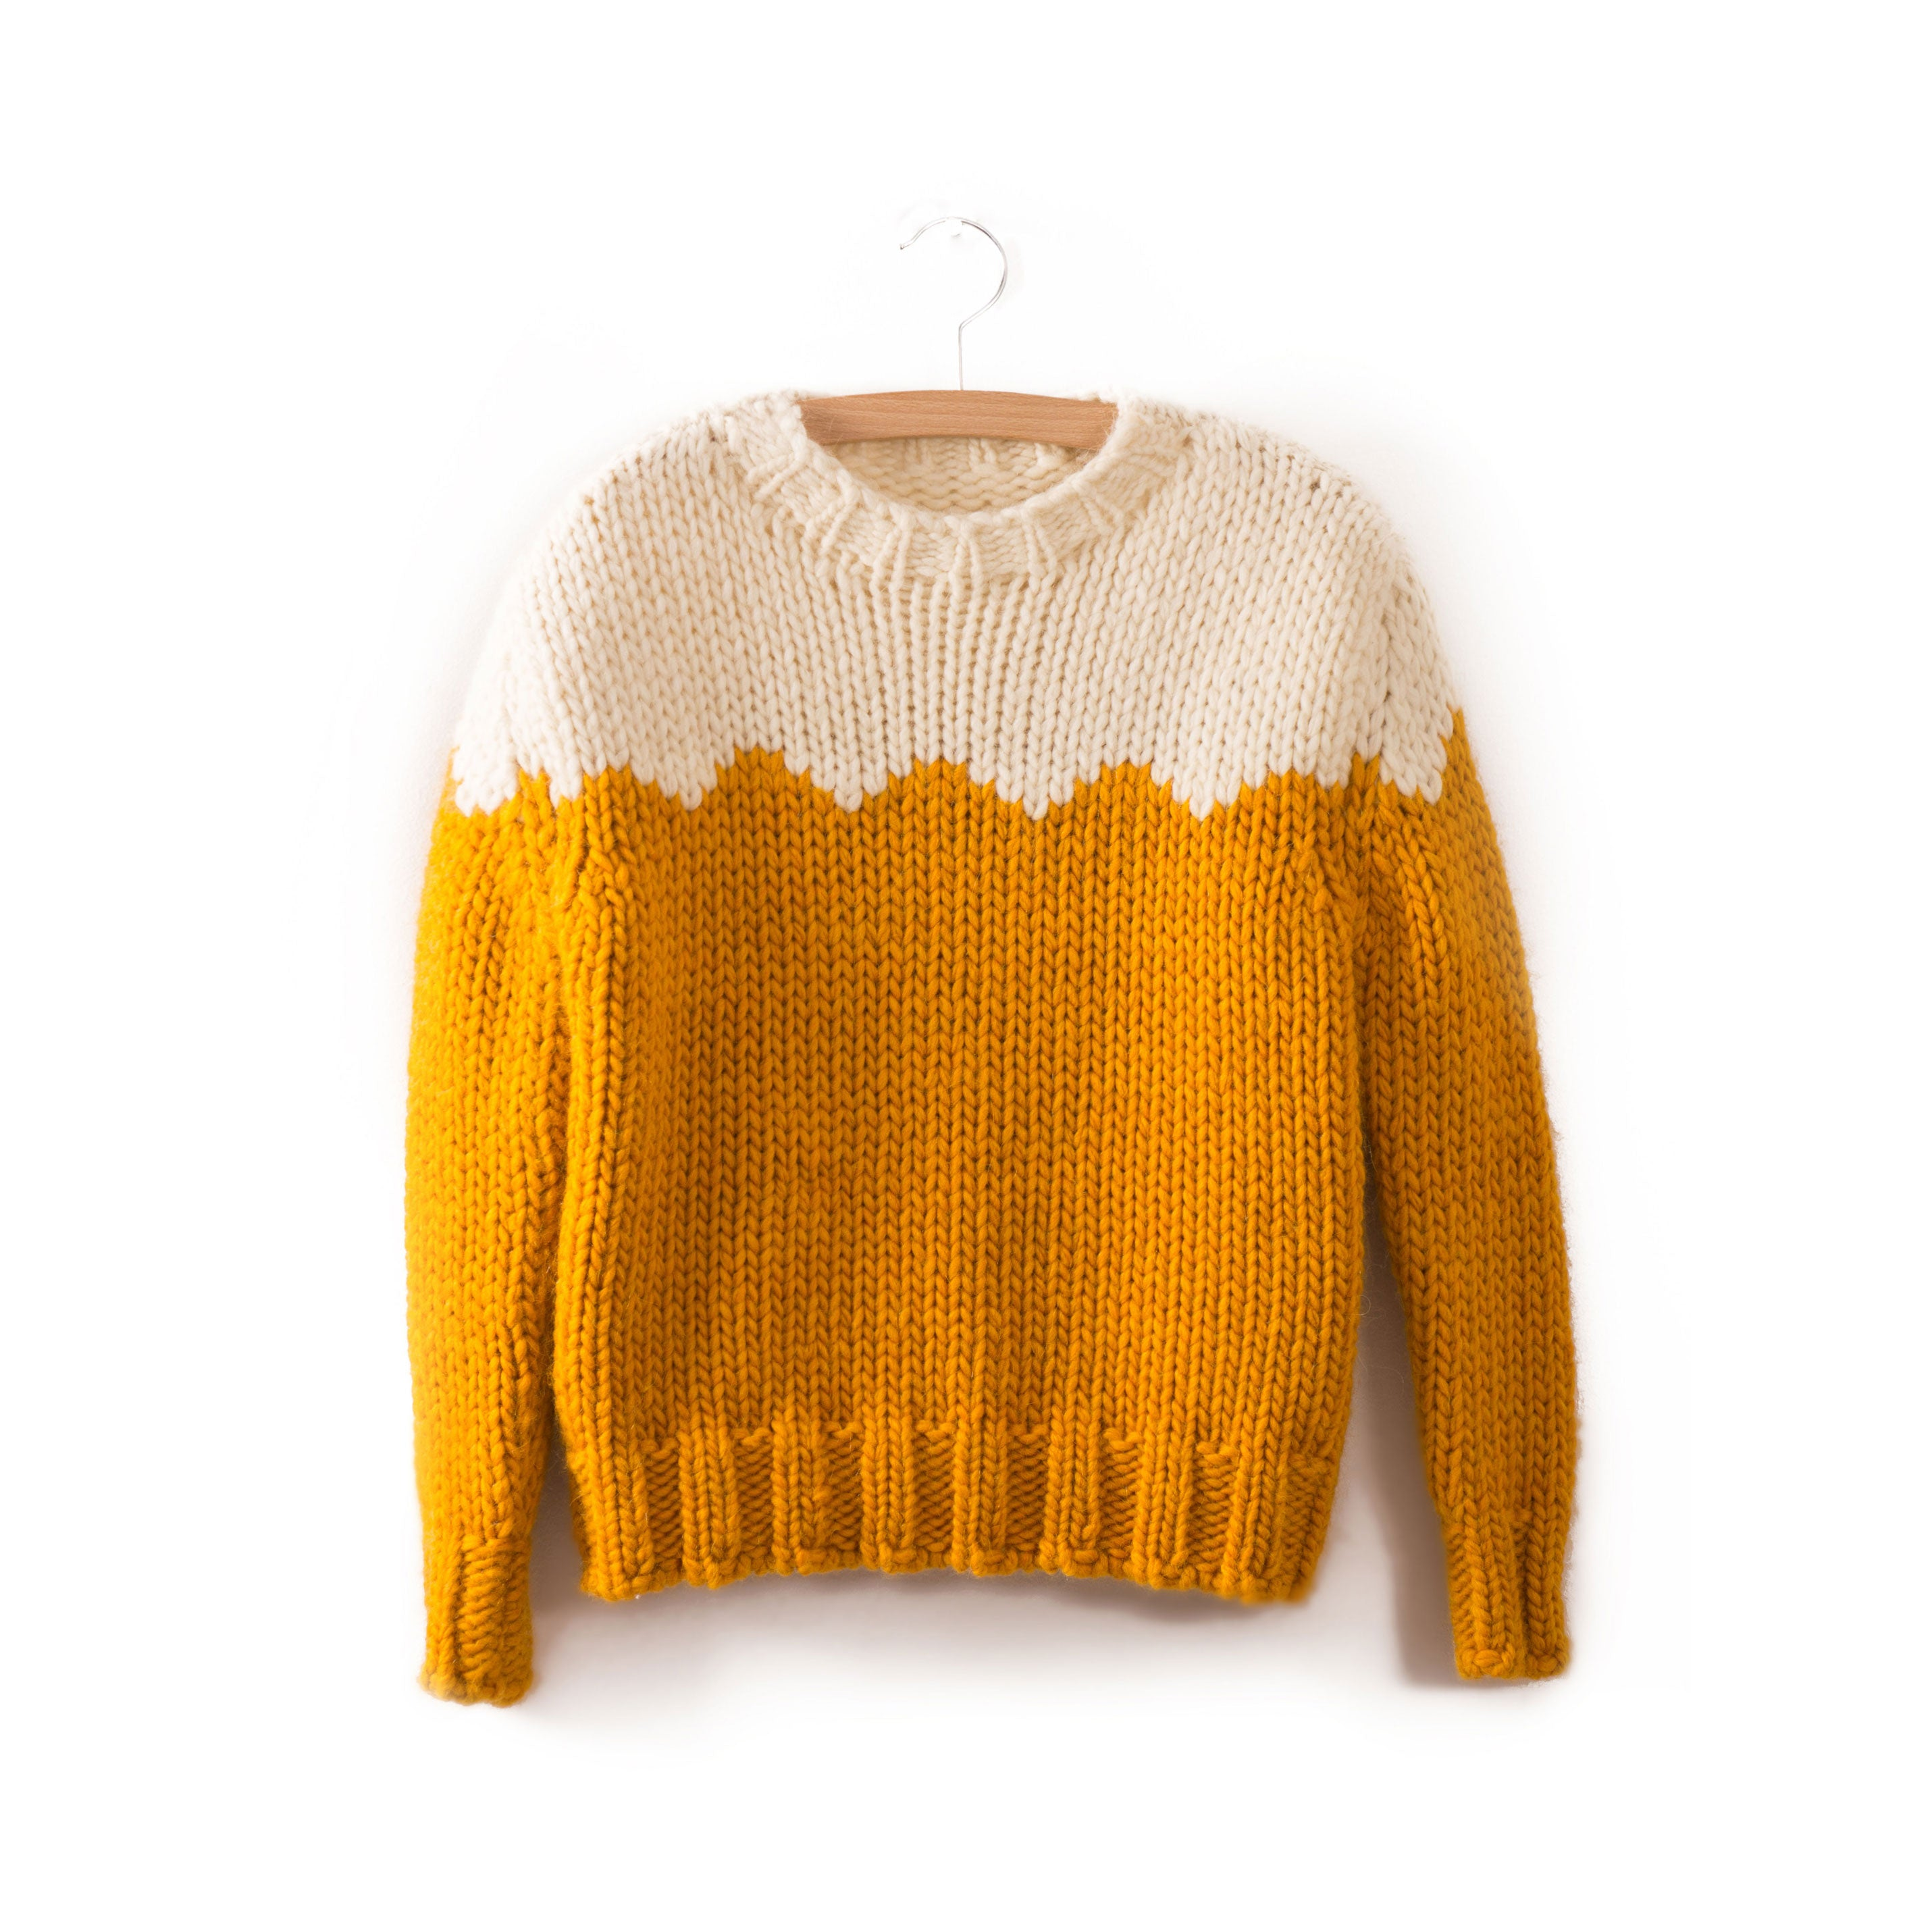 Bobo Choses Morning Sea Intarsia Jumper - Ladida